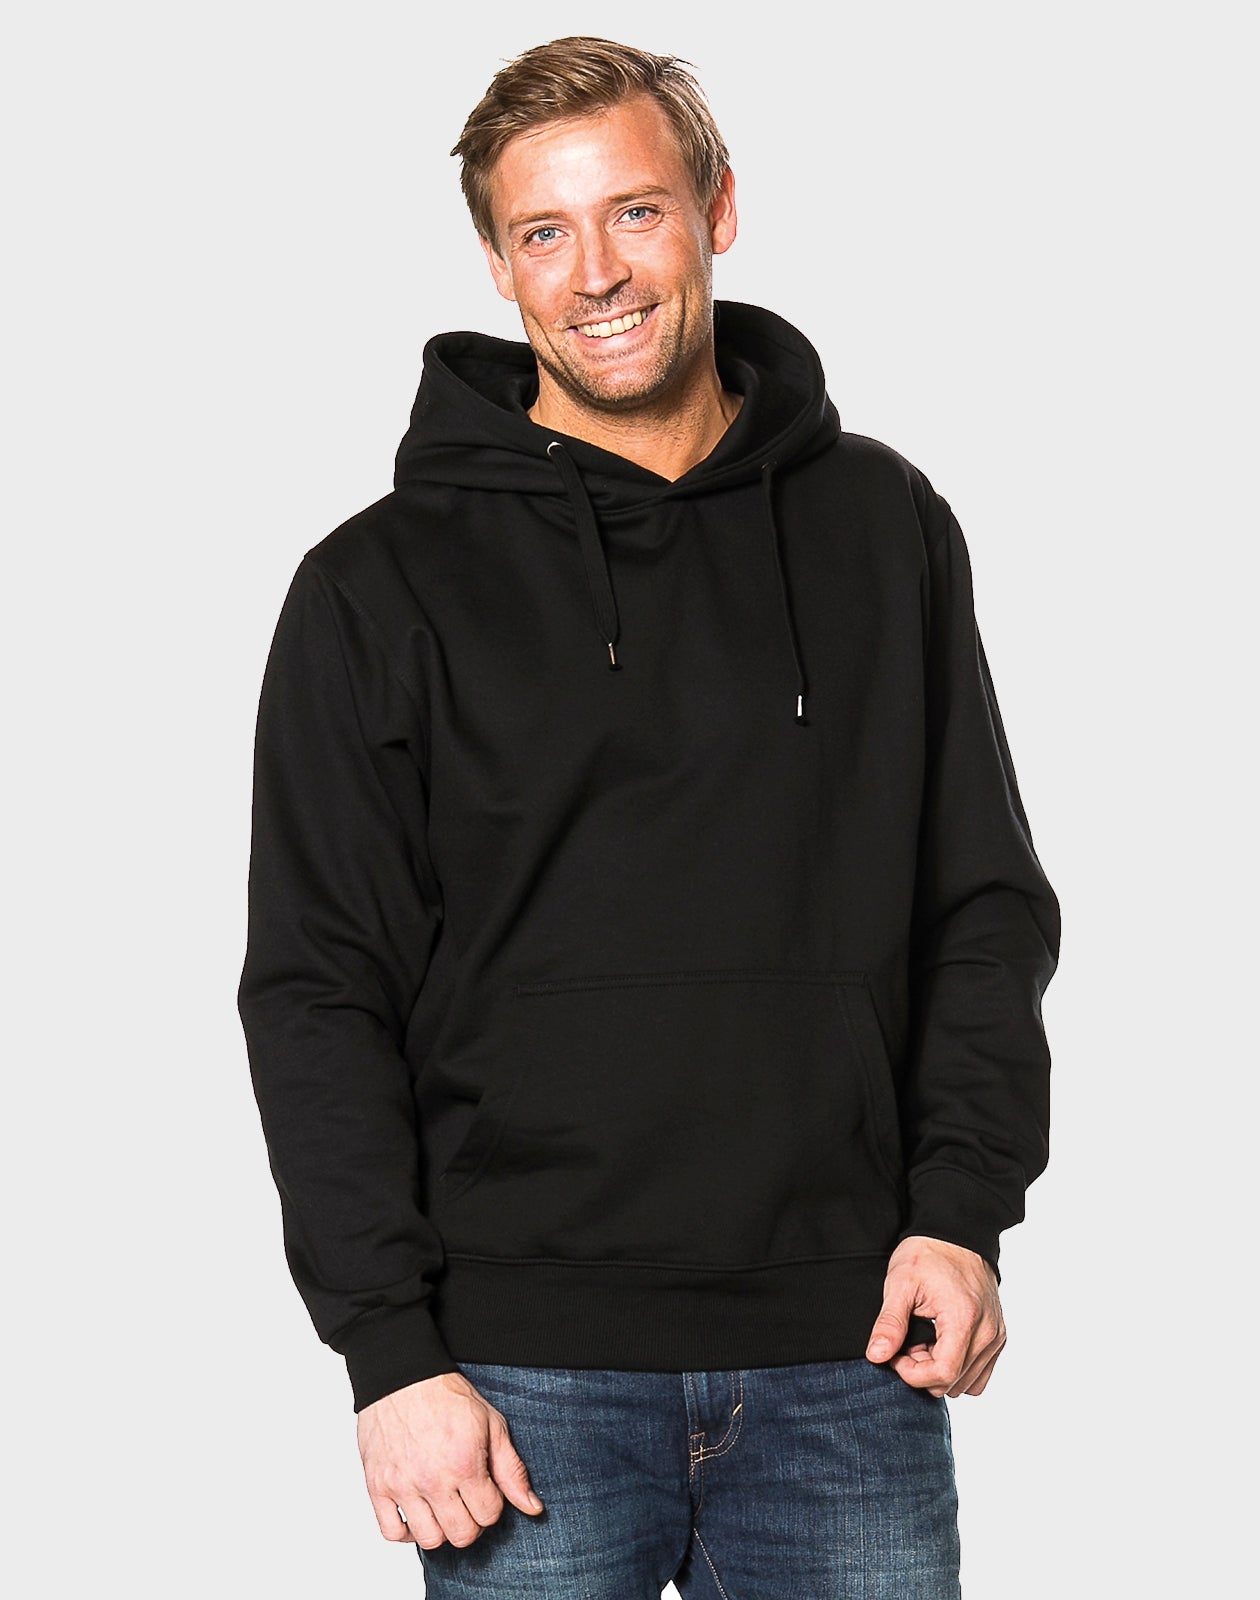 Tailored fit - Basic Hoodie, Sort T-shirt - ACC Store